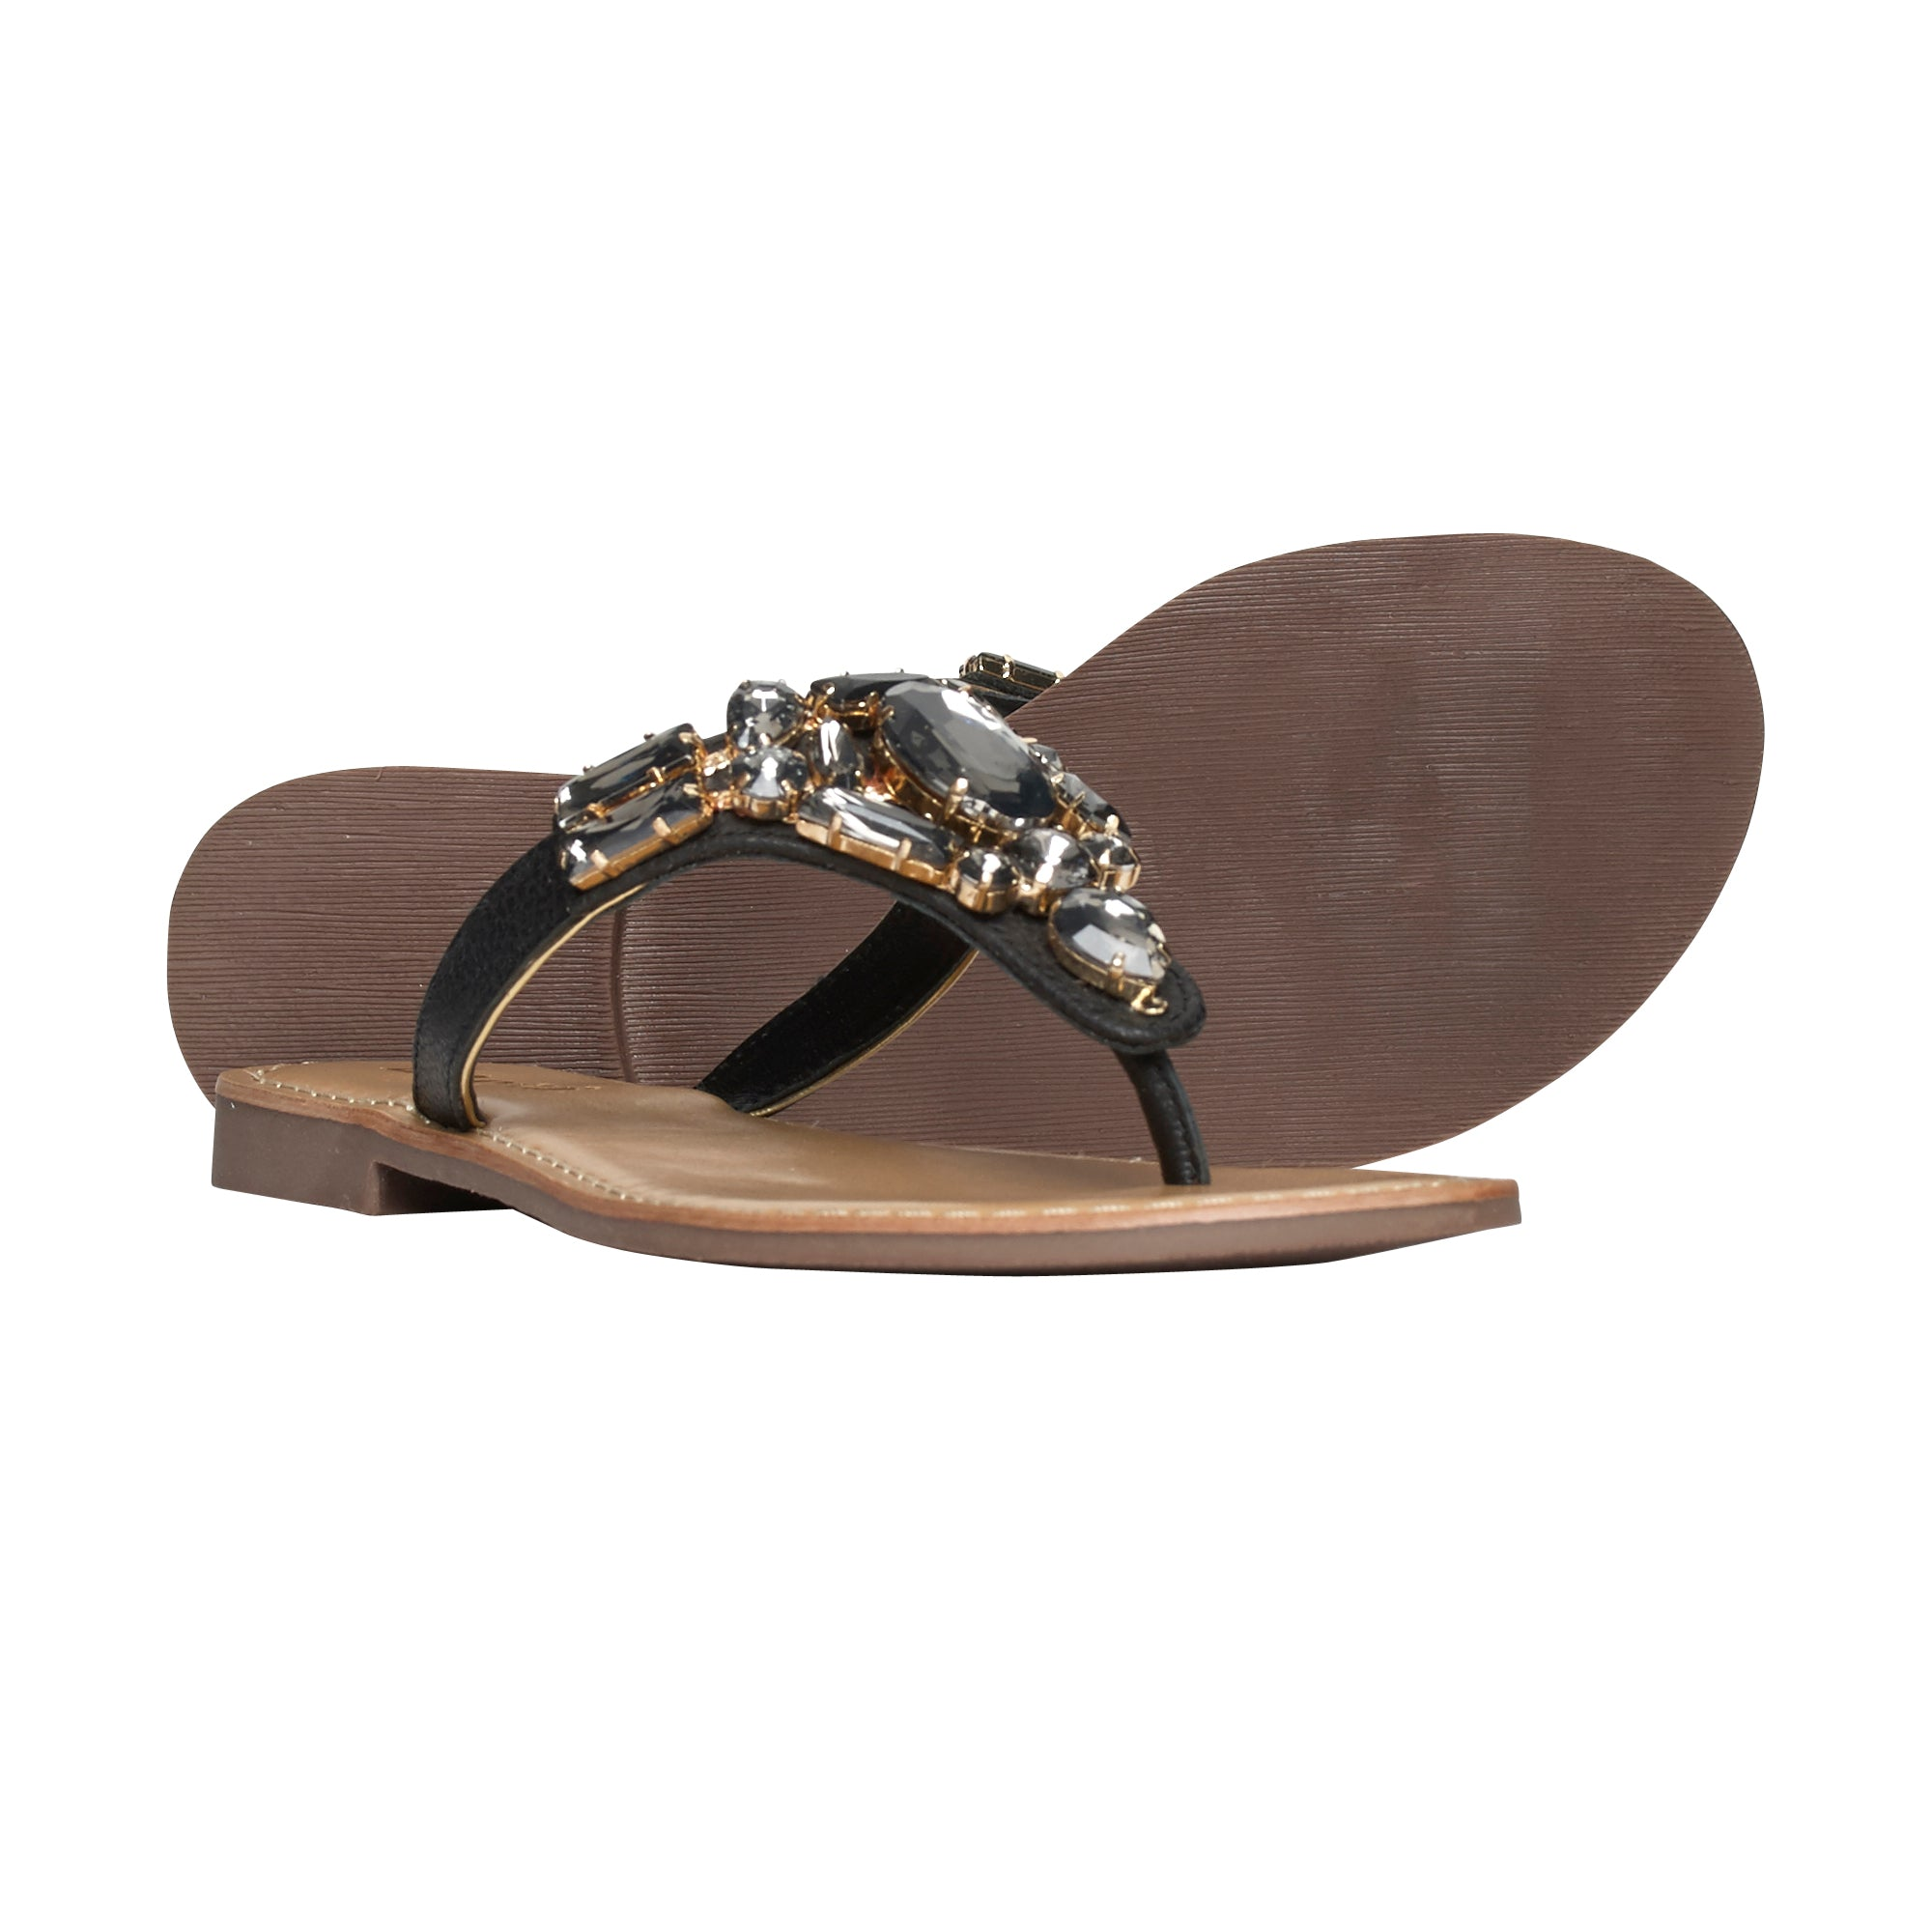 Ladies Flat Sandals IF-5383 Black_Grey